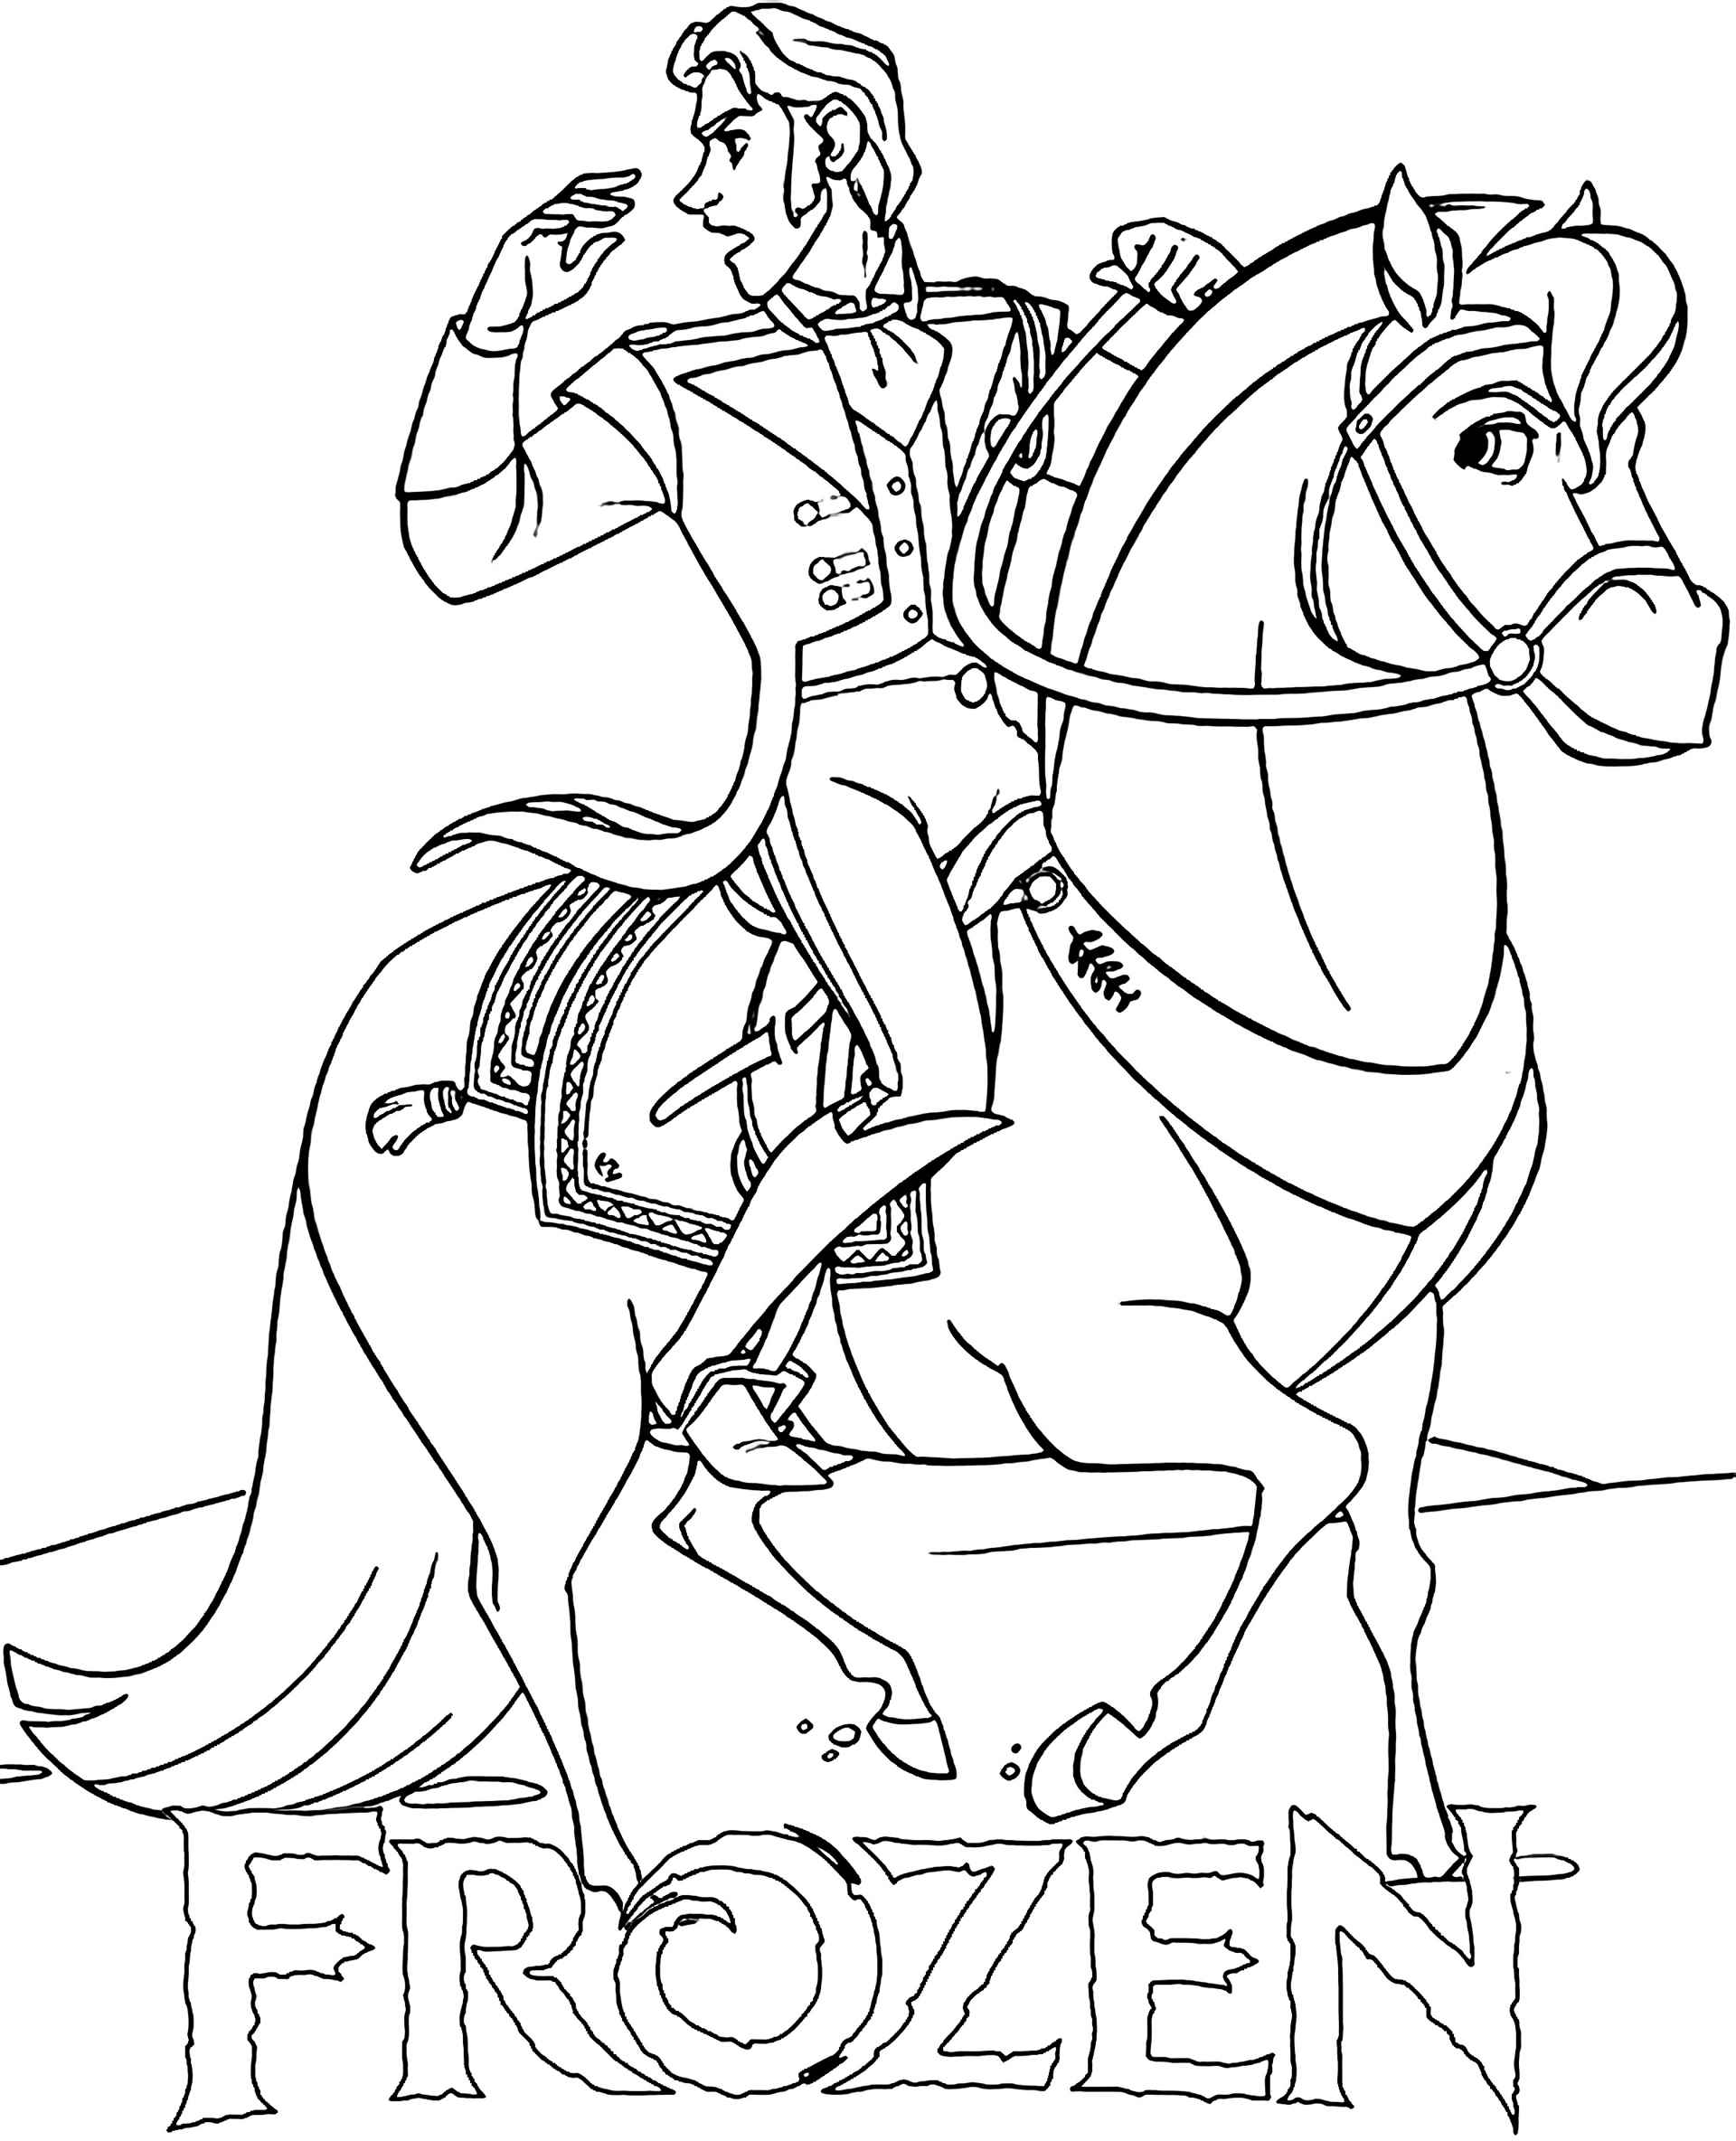 Hans On A Horse Coloring Page